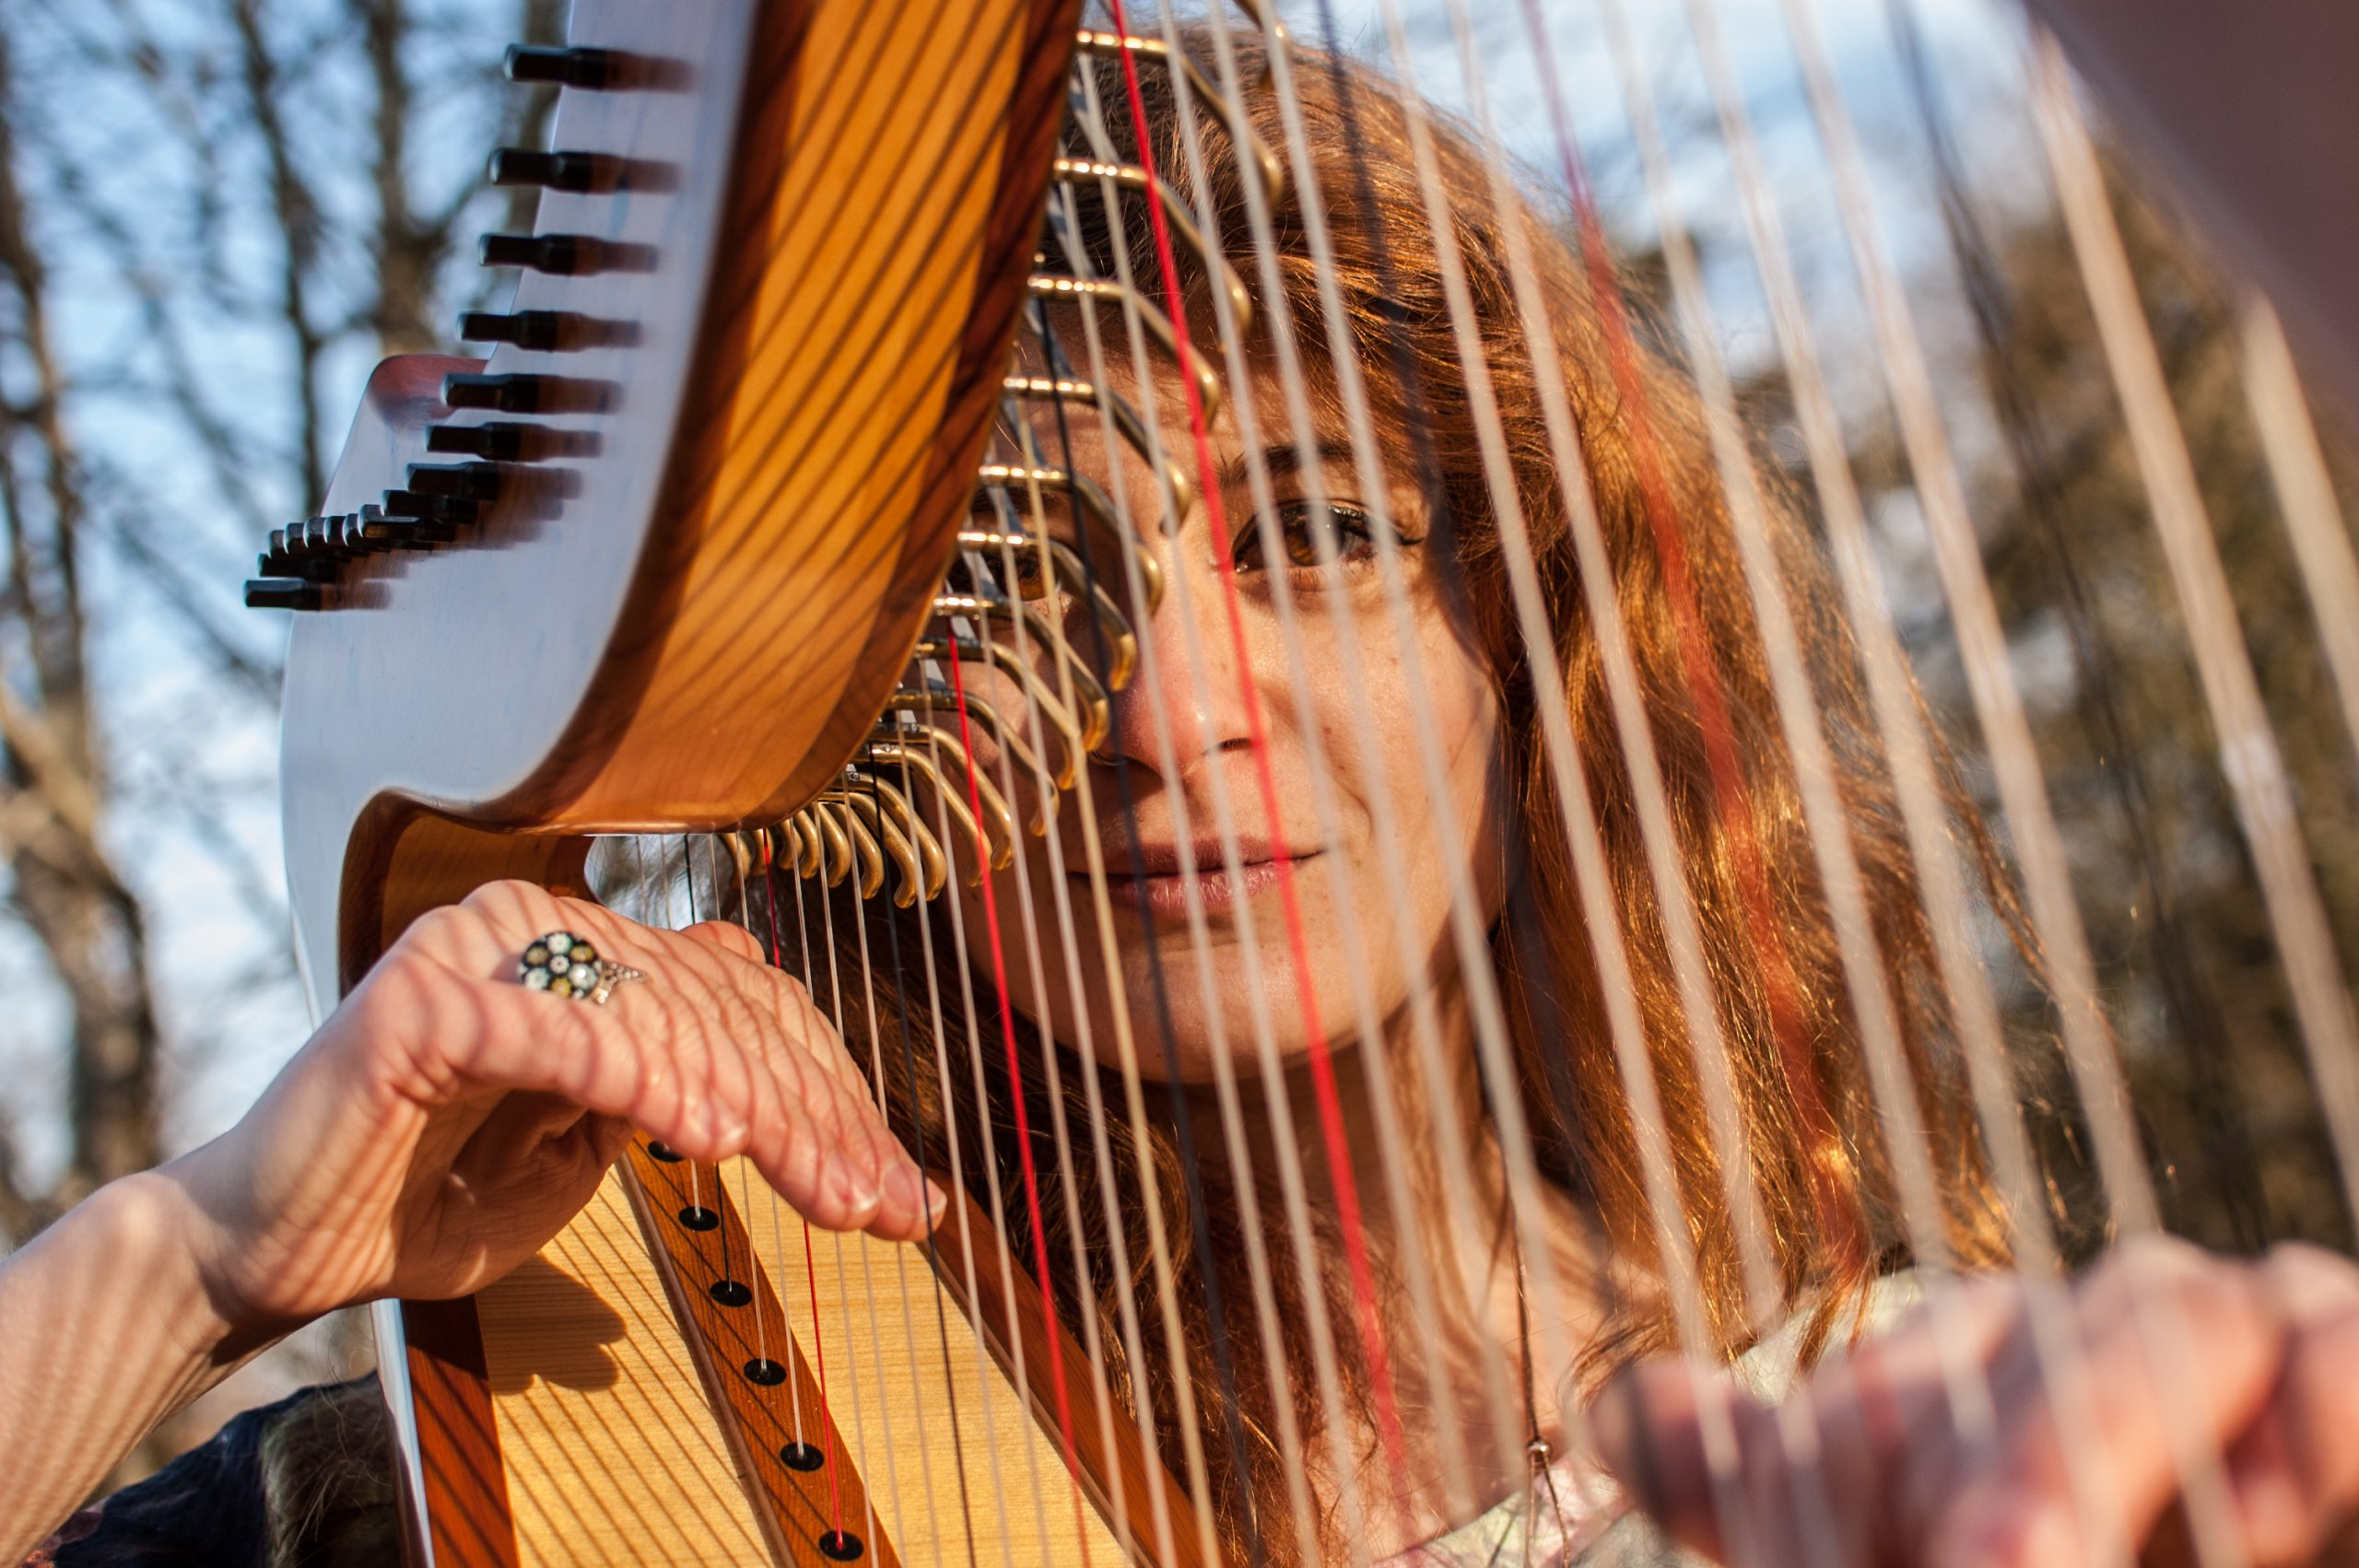 Sam MacAdam posing behind the strings of her harp.